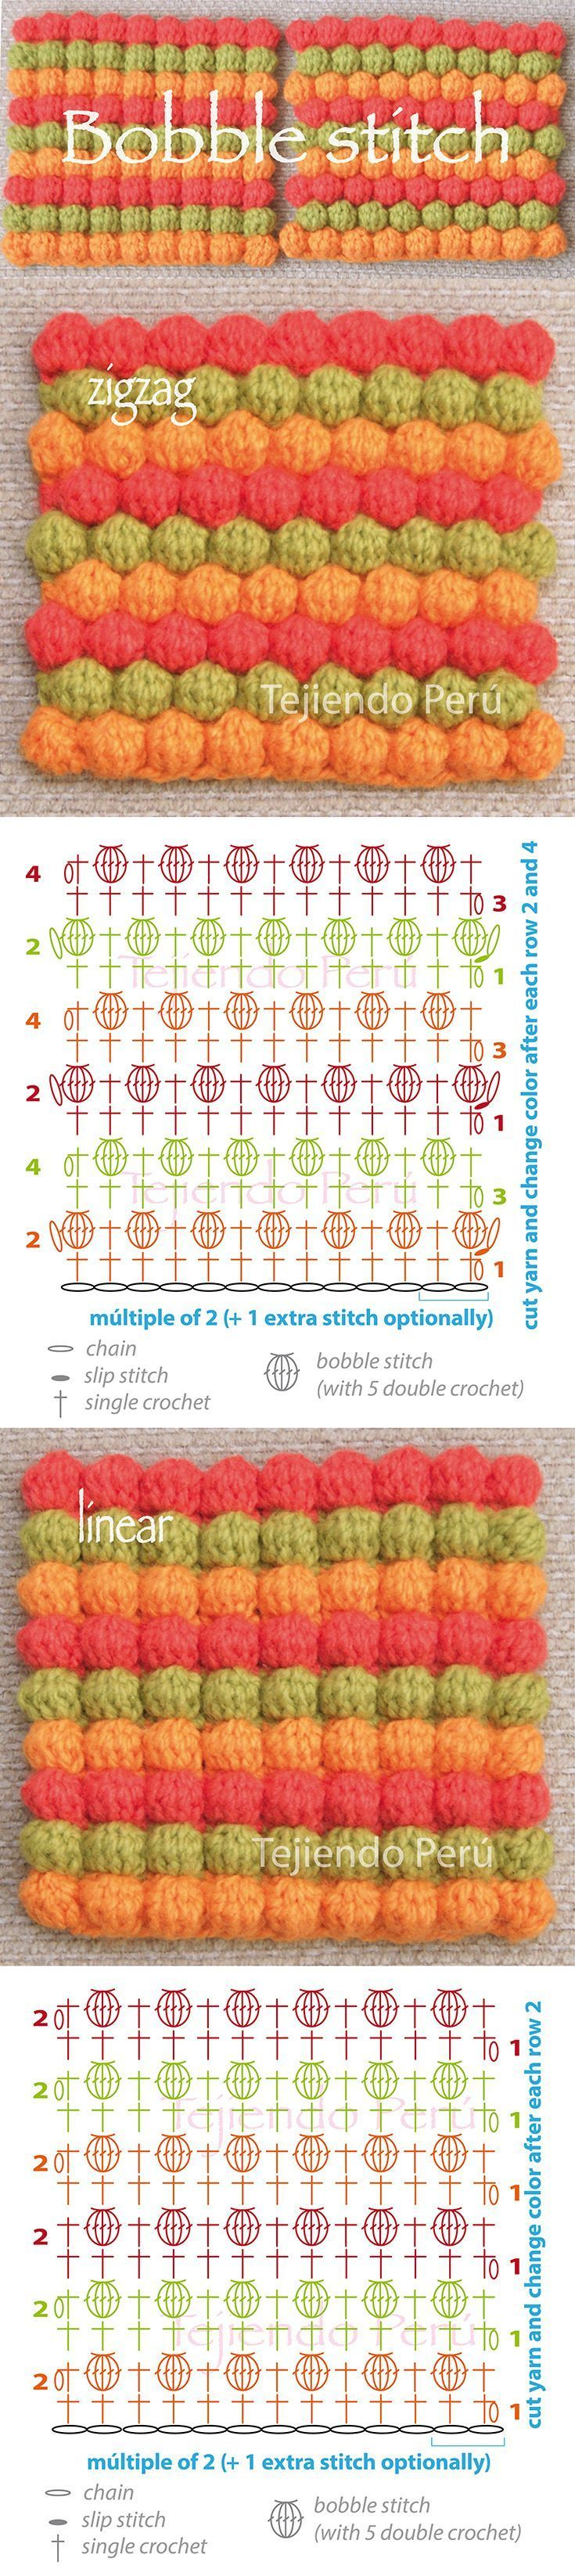 Crochet bobble stitch pattern: zigzag and linear! (diagram or chart):